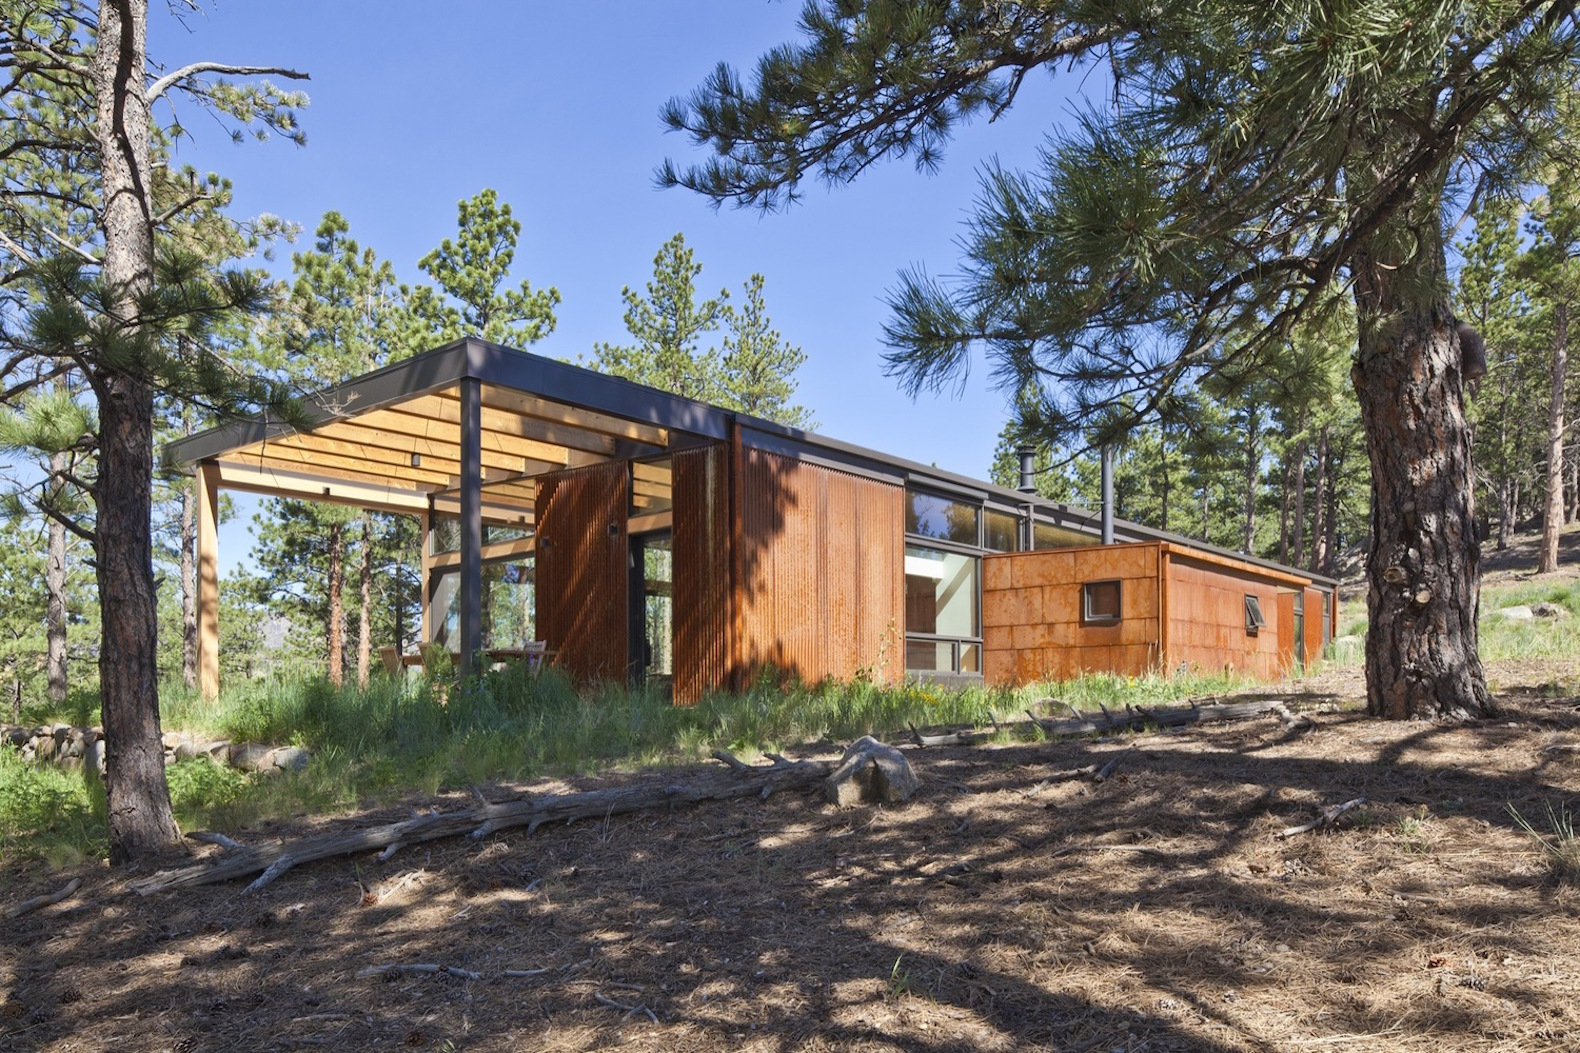 Award Winning Boulder Cabin Minimizes Energy Use And Material Waste